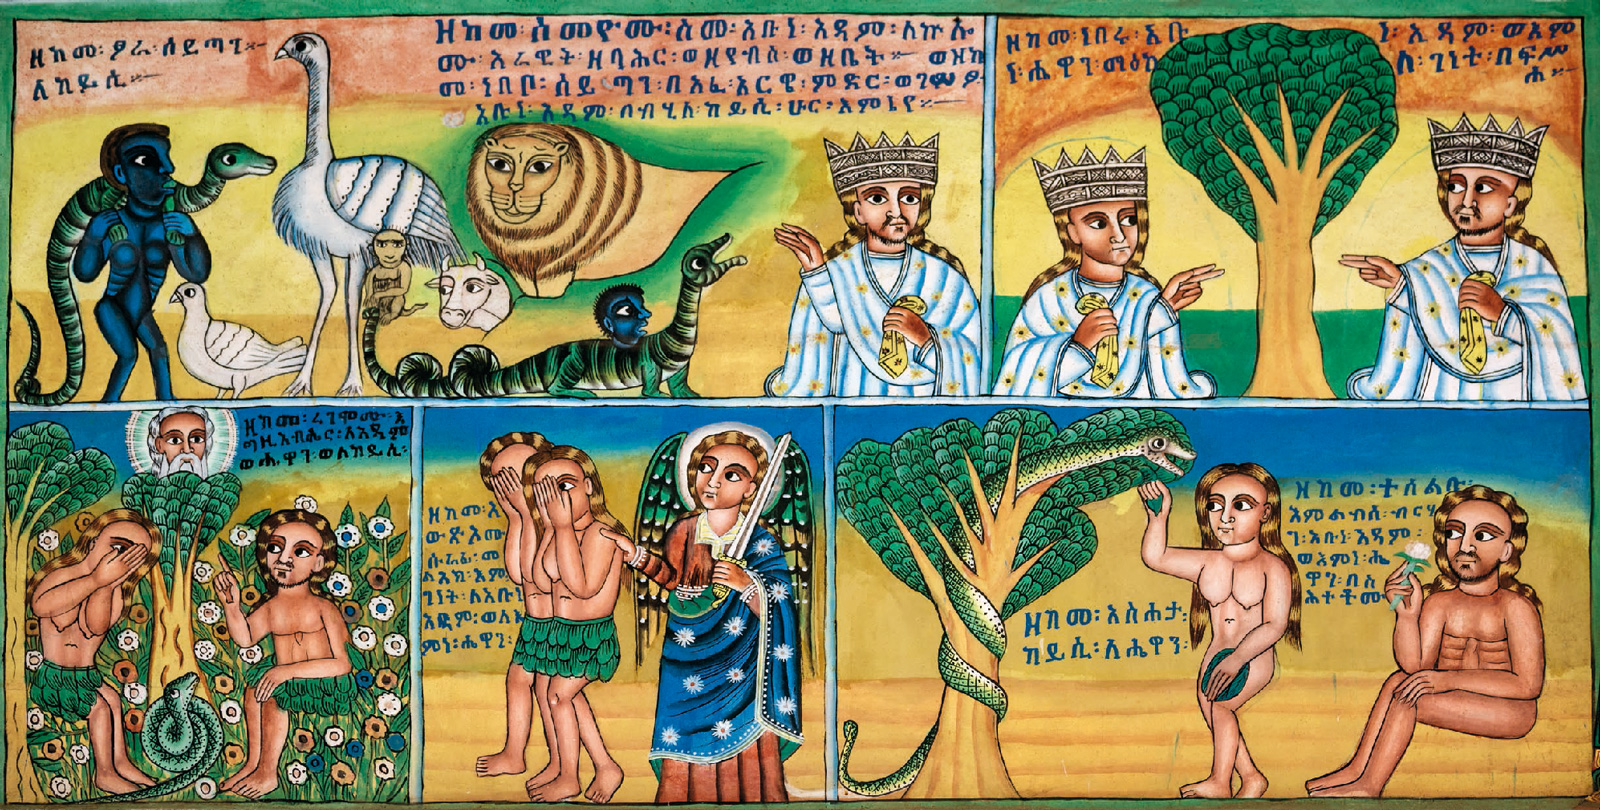 The Ethiopian version of the story of Adamael and Hewan (Adam and Eve)